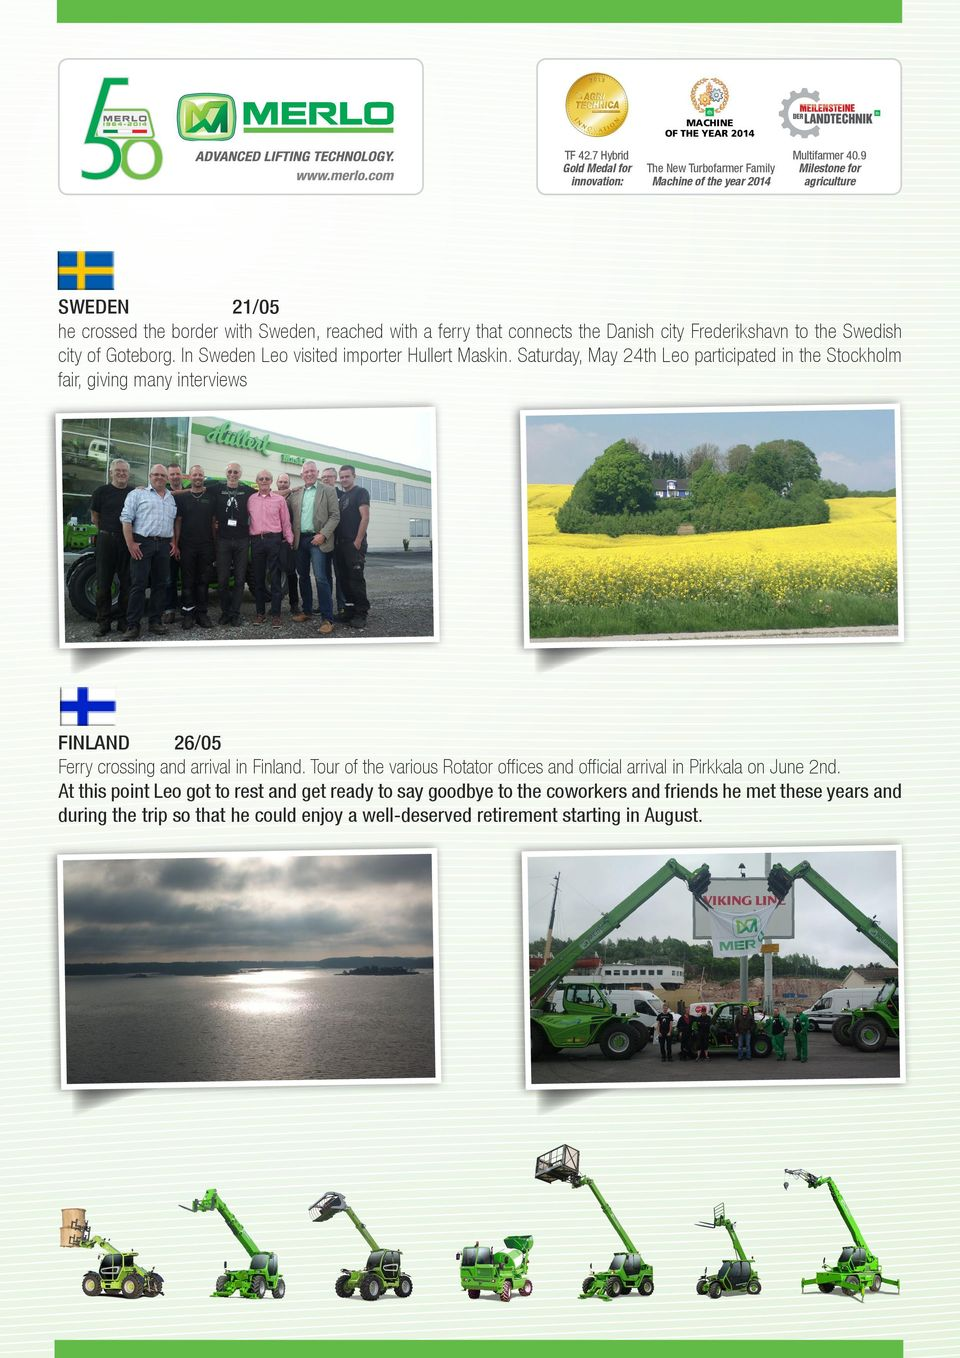 Saturday, May 24th Leo participated in the Stockholm fair, giving many interviews FINLAND 26/05 Ferry crossing and arrival in Finland.